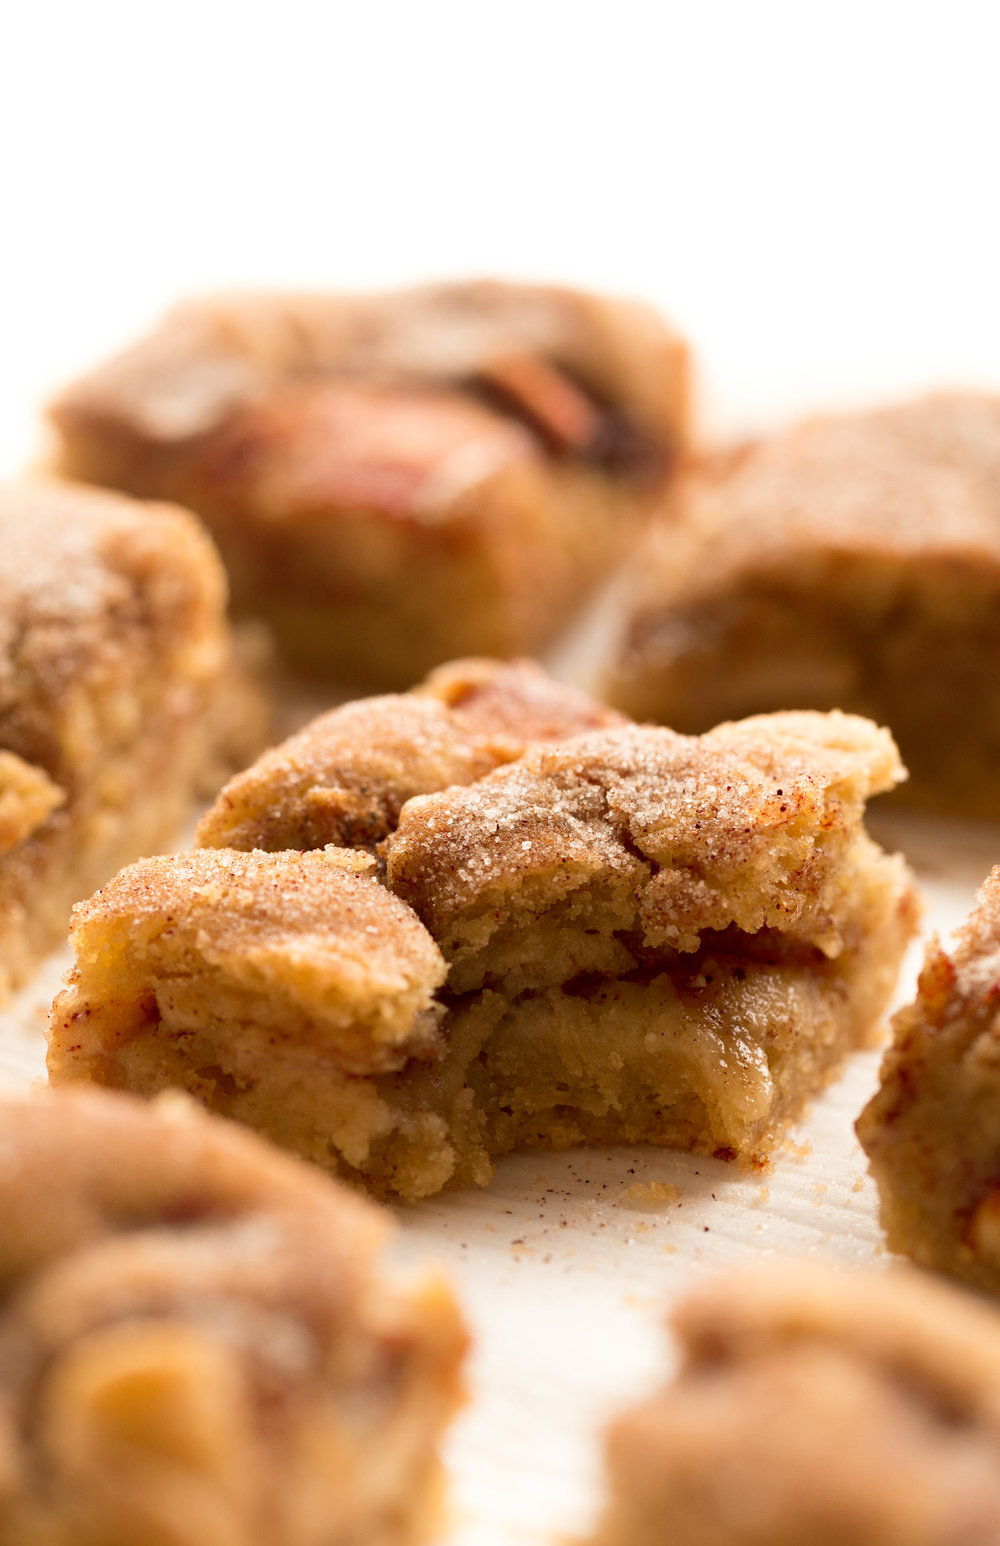 Gooey Snickerdoodle Cookie Apple Bars: tender, juicy, cinnamon apple slices encased in gooey, rich snickerdoodle cookie dough. Easy and dairy-free! | TrufflesandTrends.com